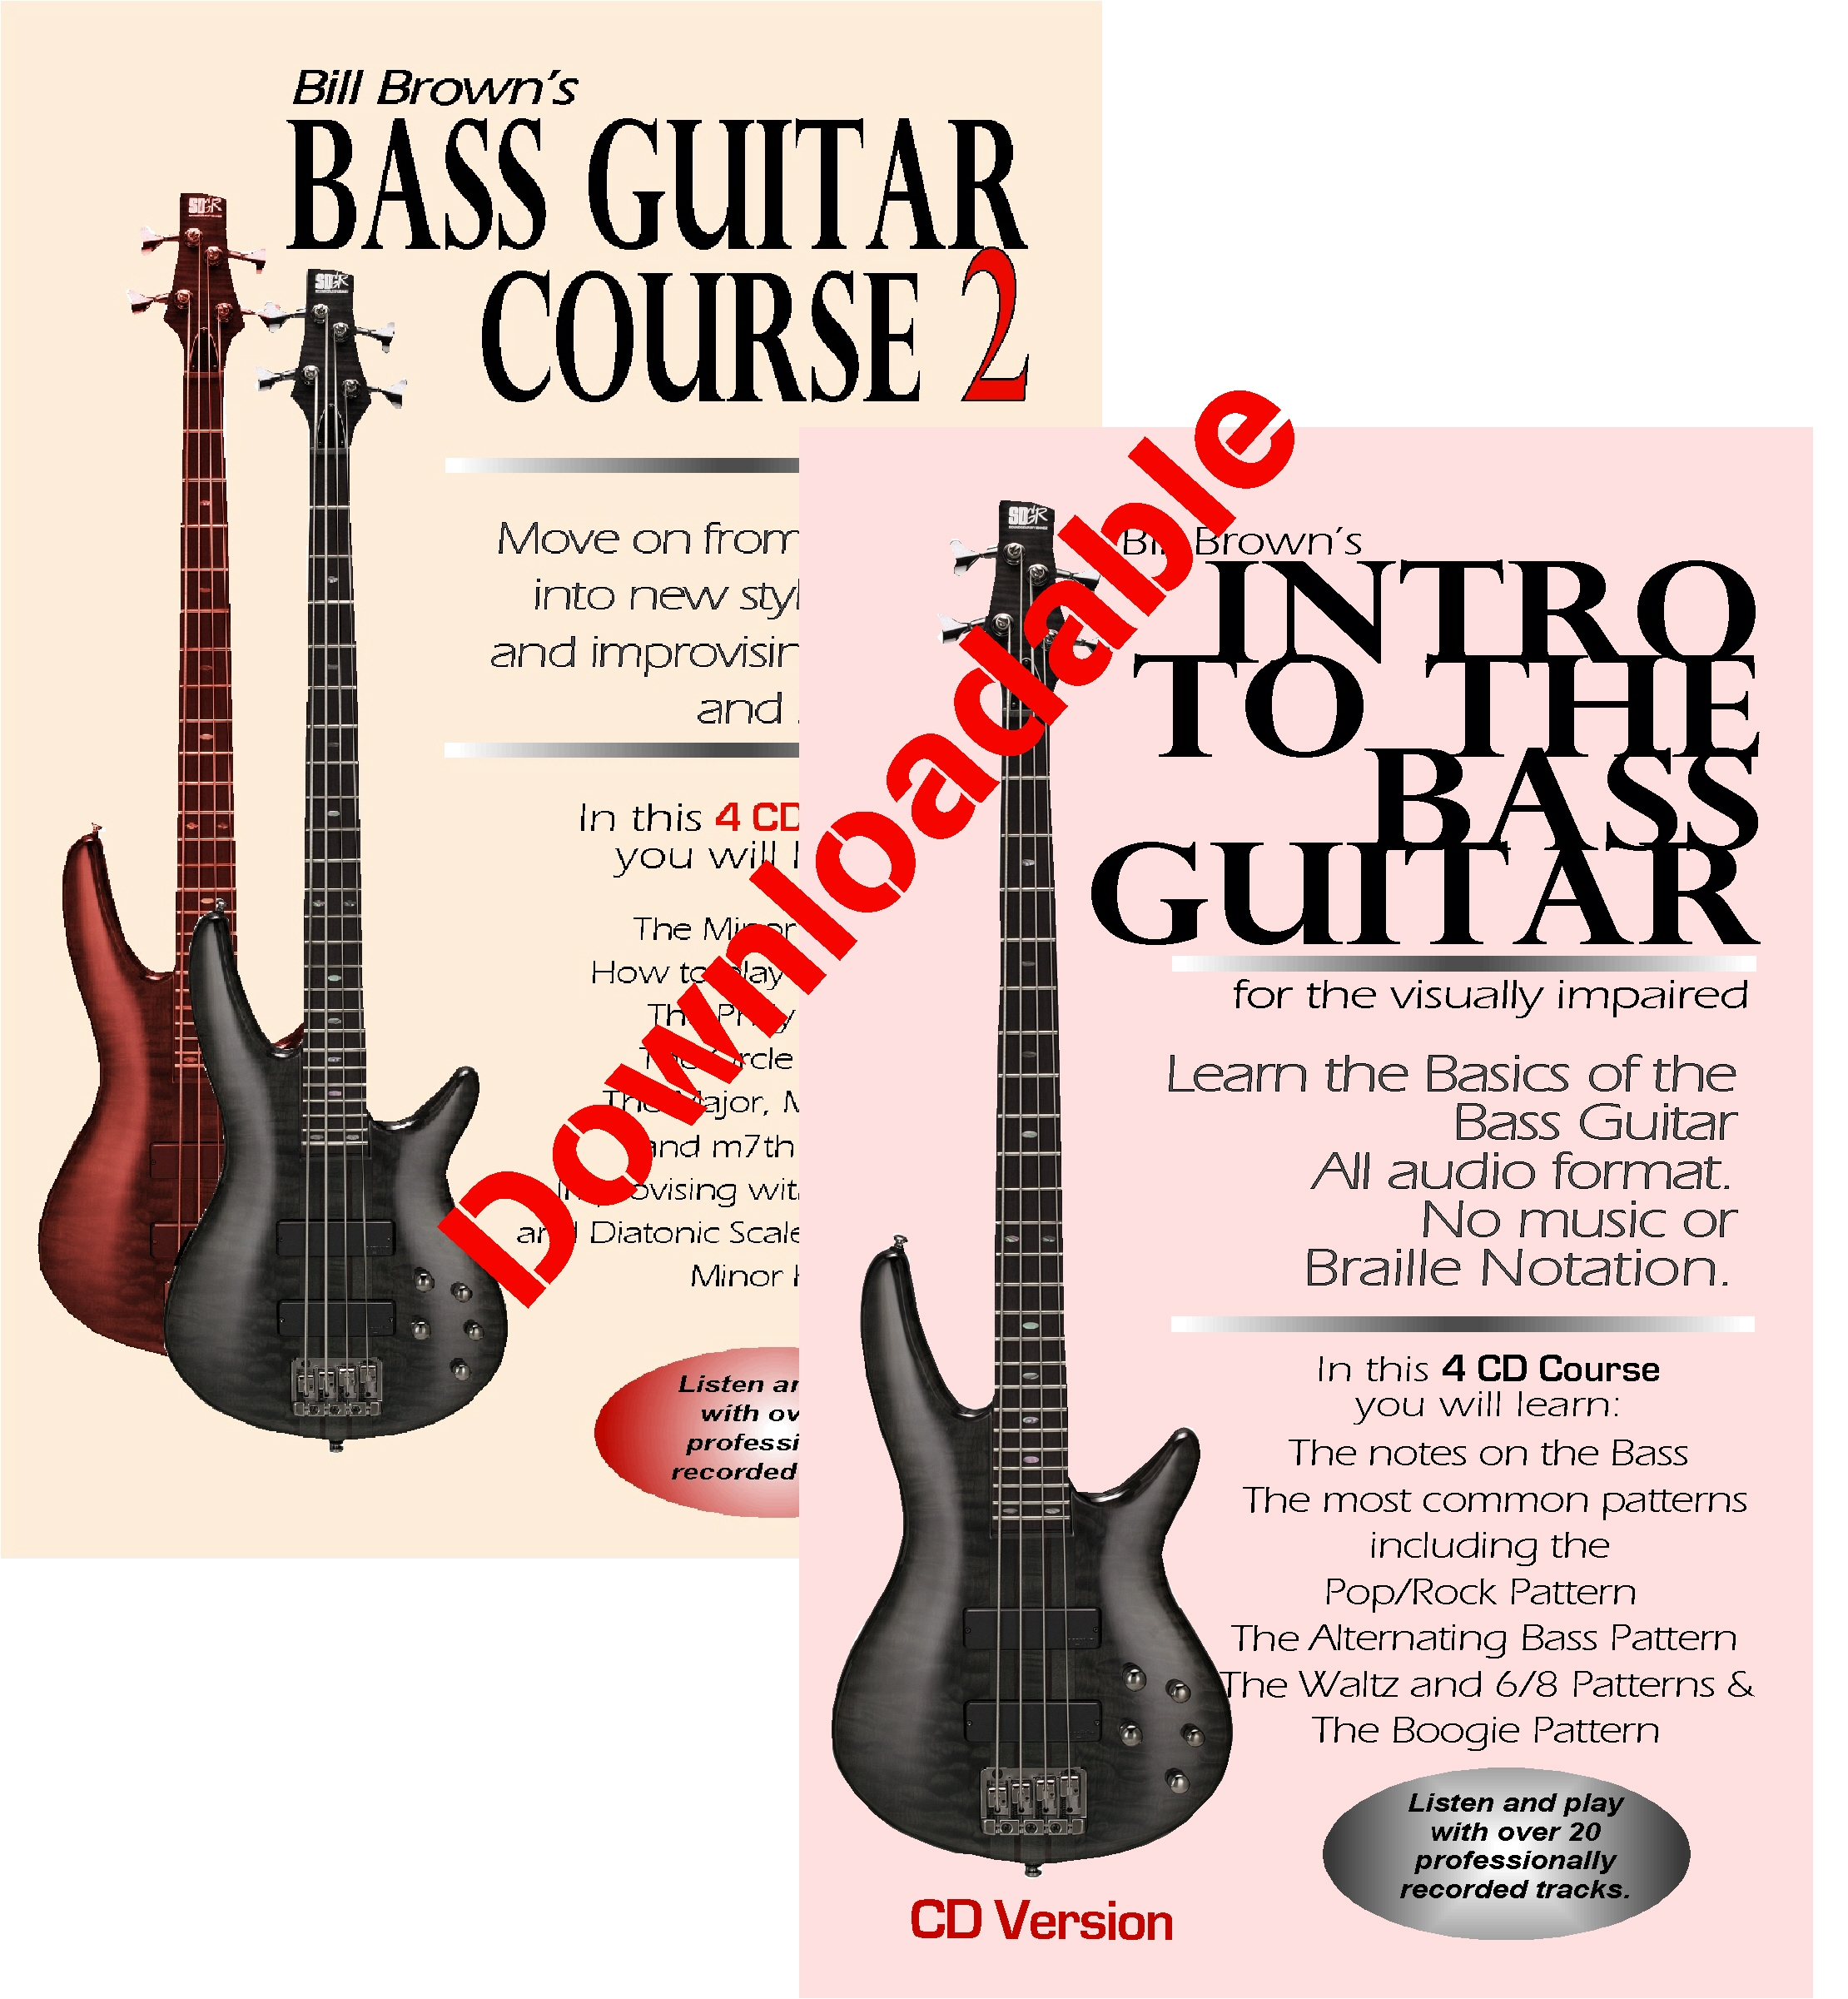 Intro to the Bass Guitar for the Visually Impaired and Bass Course 2 (Downloadable)